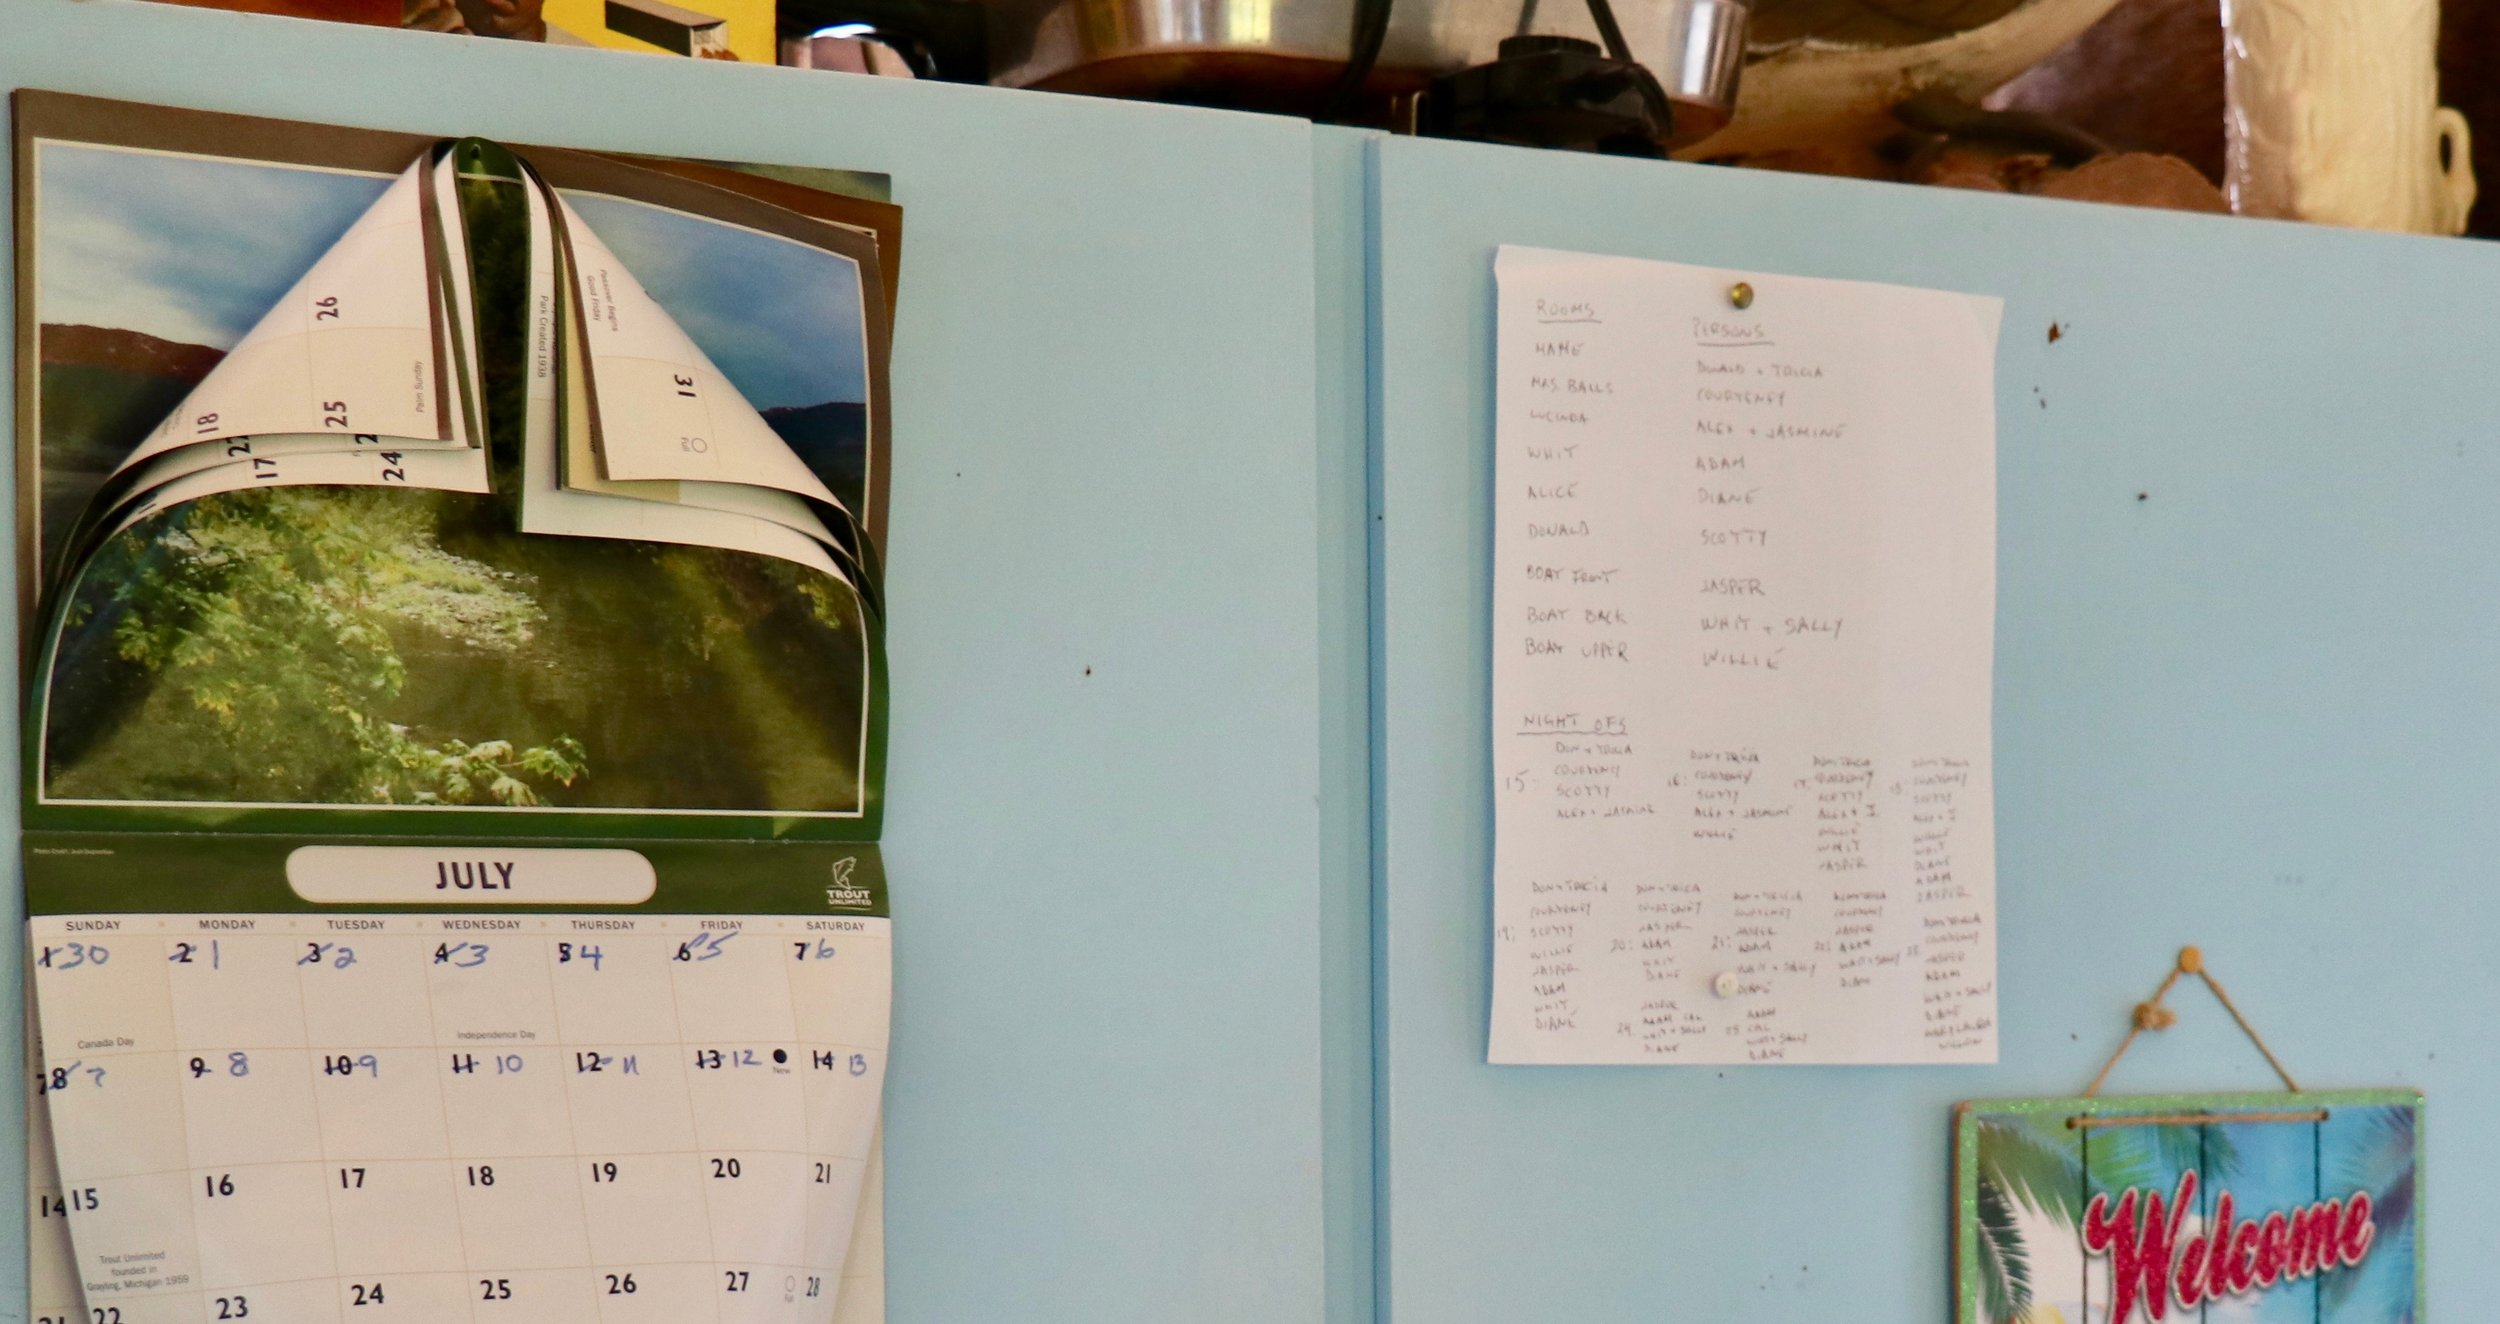 We all laughed when we arrived and found that my husband's sister had adapted the calendar left over from last year to this year! The list on the right was created by Donald, it designates which family member is assigned to which bedroom and the comings and goings of children and cousins. This fills my heart as my mother-in-law kept similar lists to show the comings and goings of her children and grandchildren. The bedroom puzzle is usually tricky as everyone has favorites and we need to disperse the snorers!